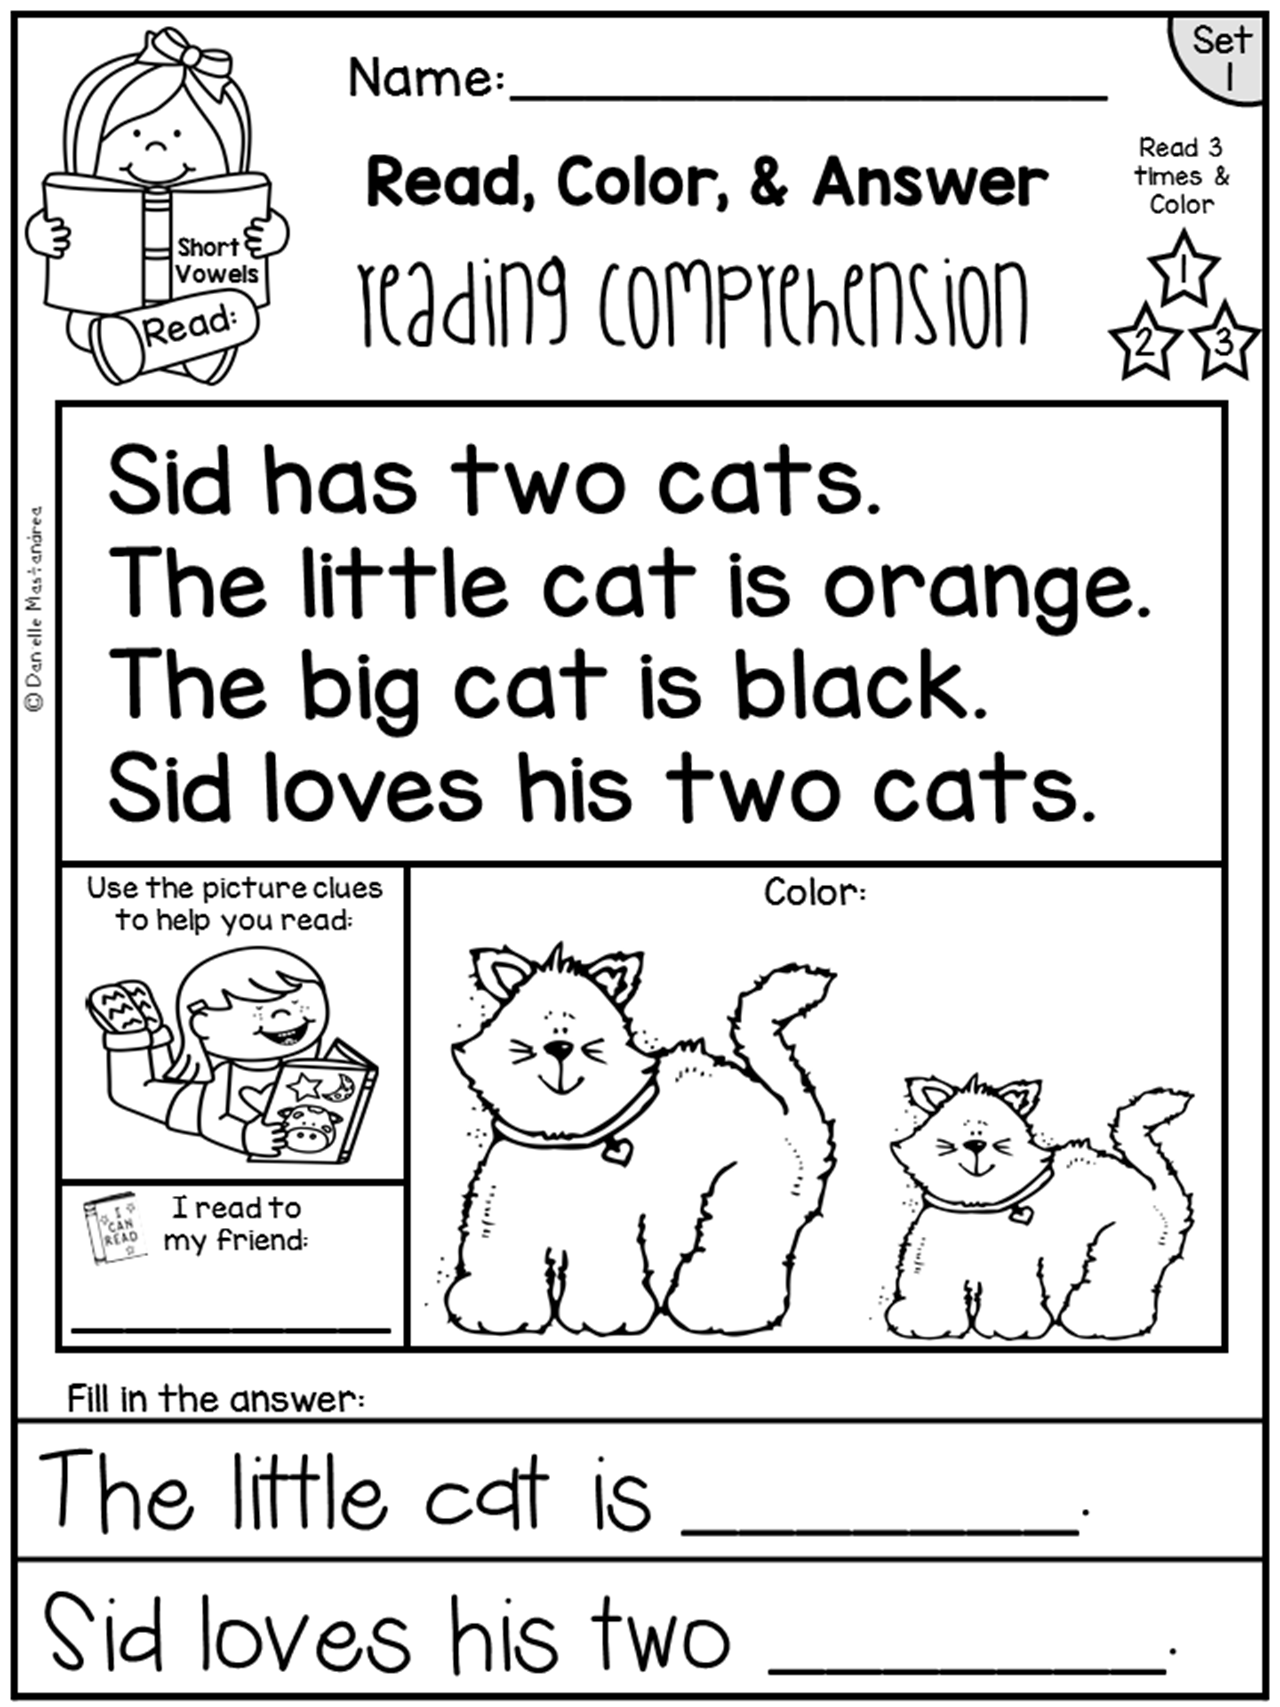 Reading Comprehension Passages Read, Color & Answer {Set